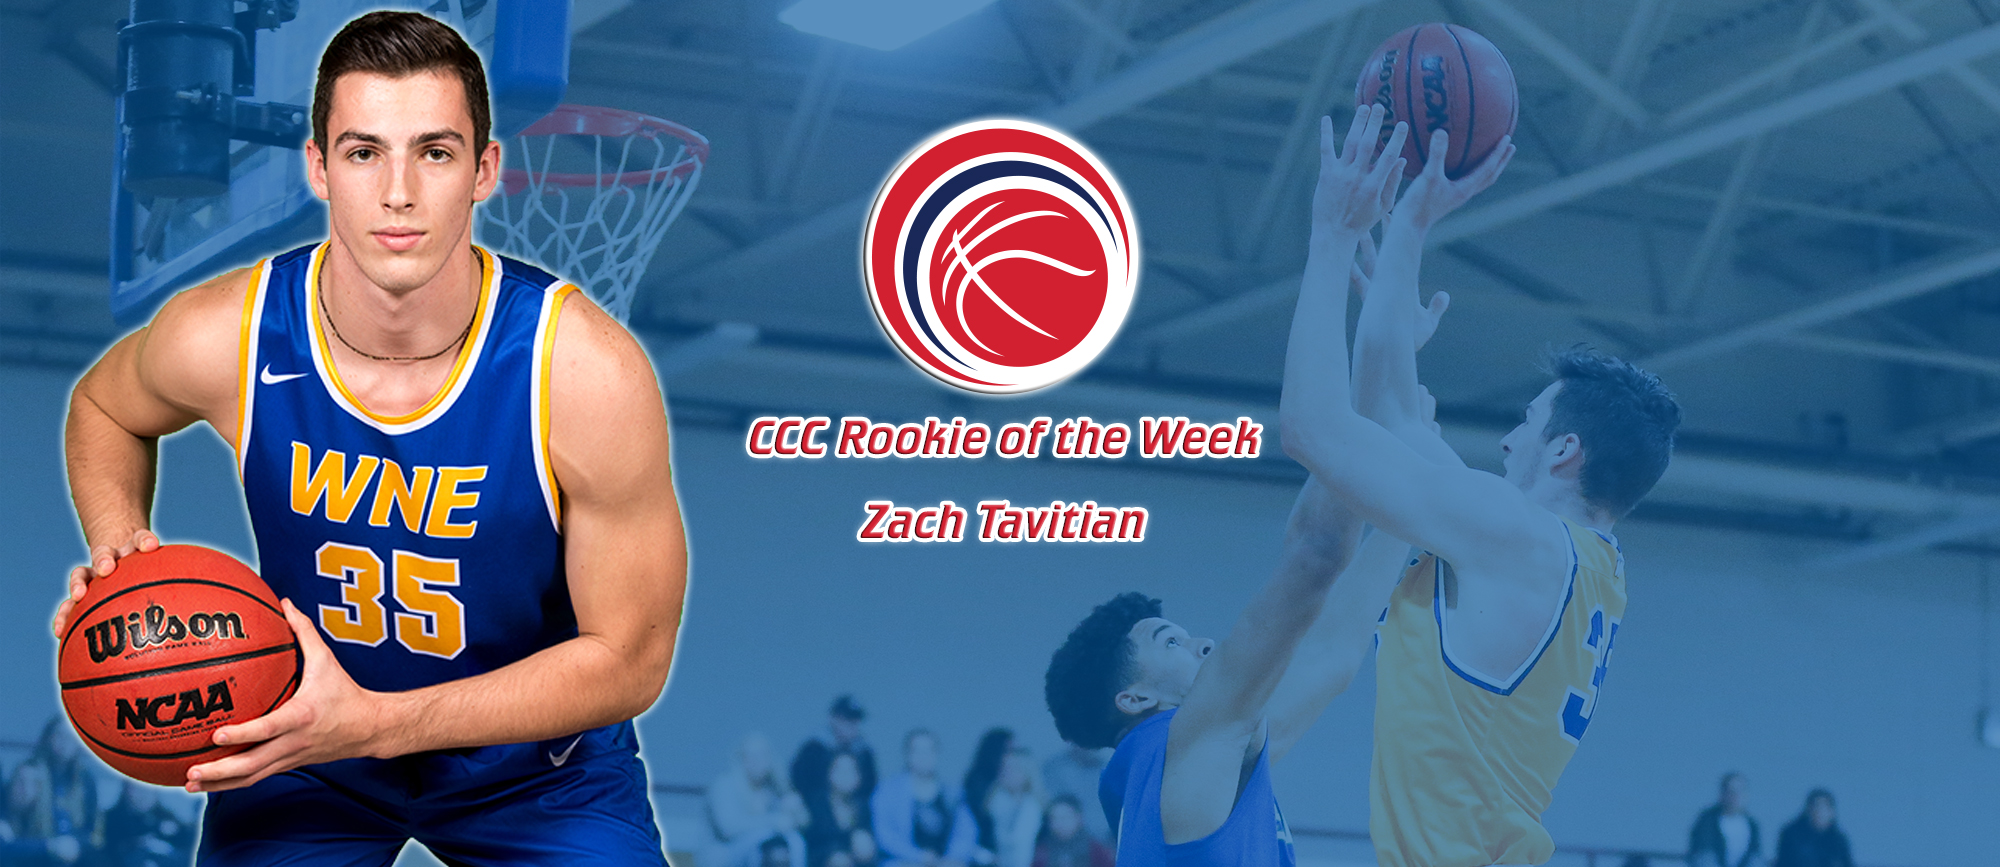 Zach Tavitian Receives Fifth CCC Rookie of the Week Award